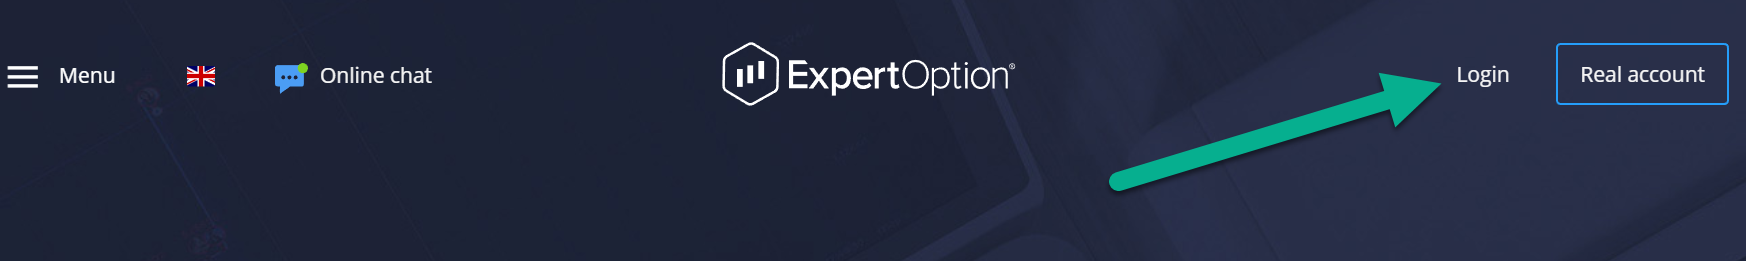 ExpertOption login deposit